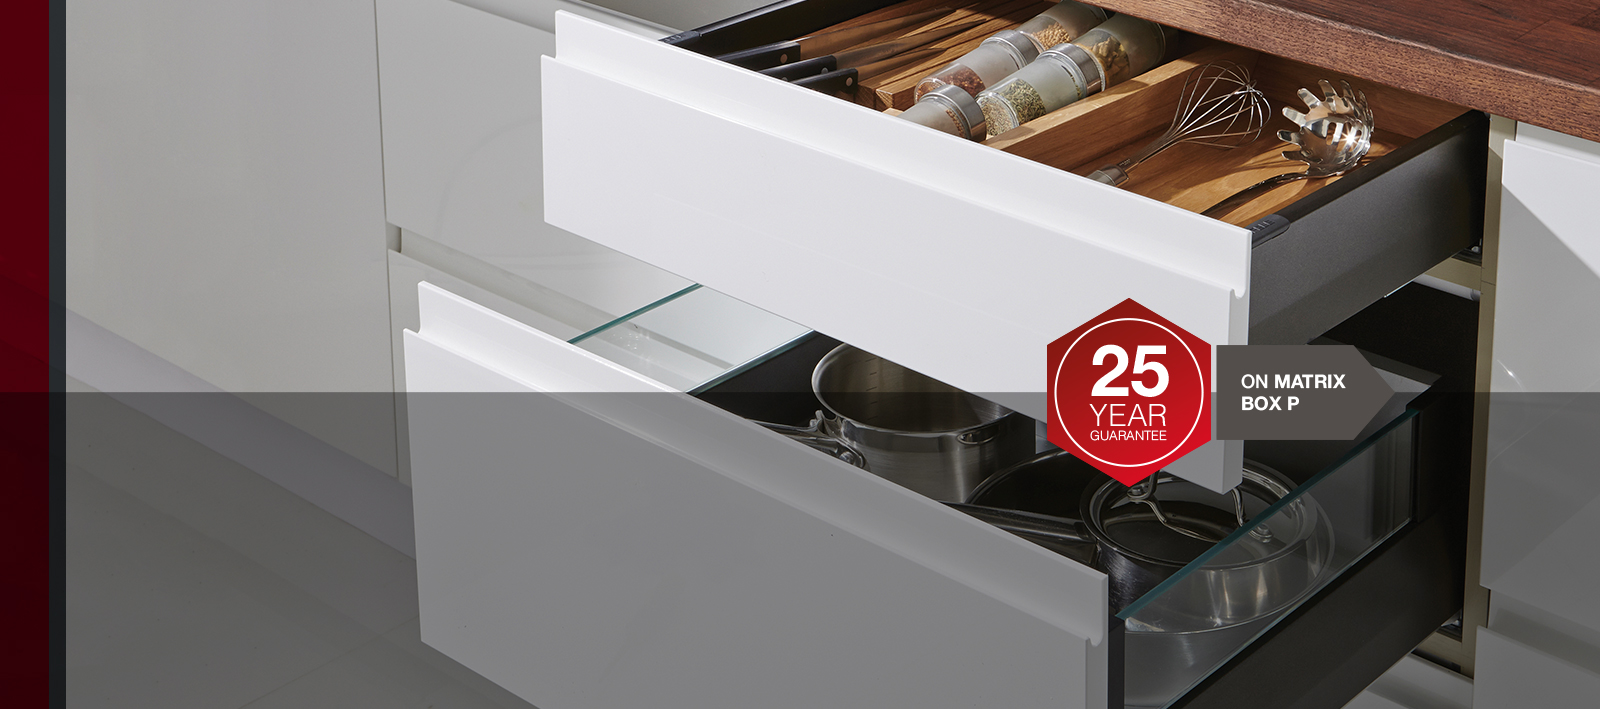 Matrix P Drawer System